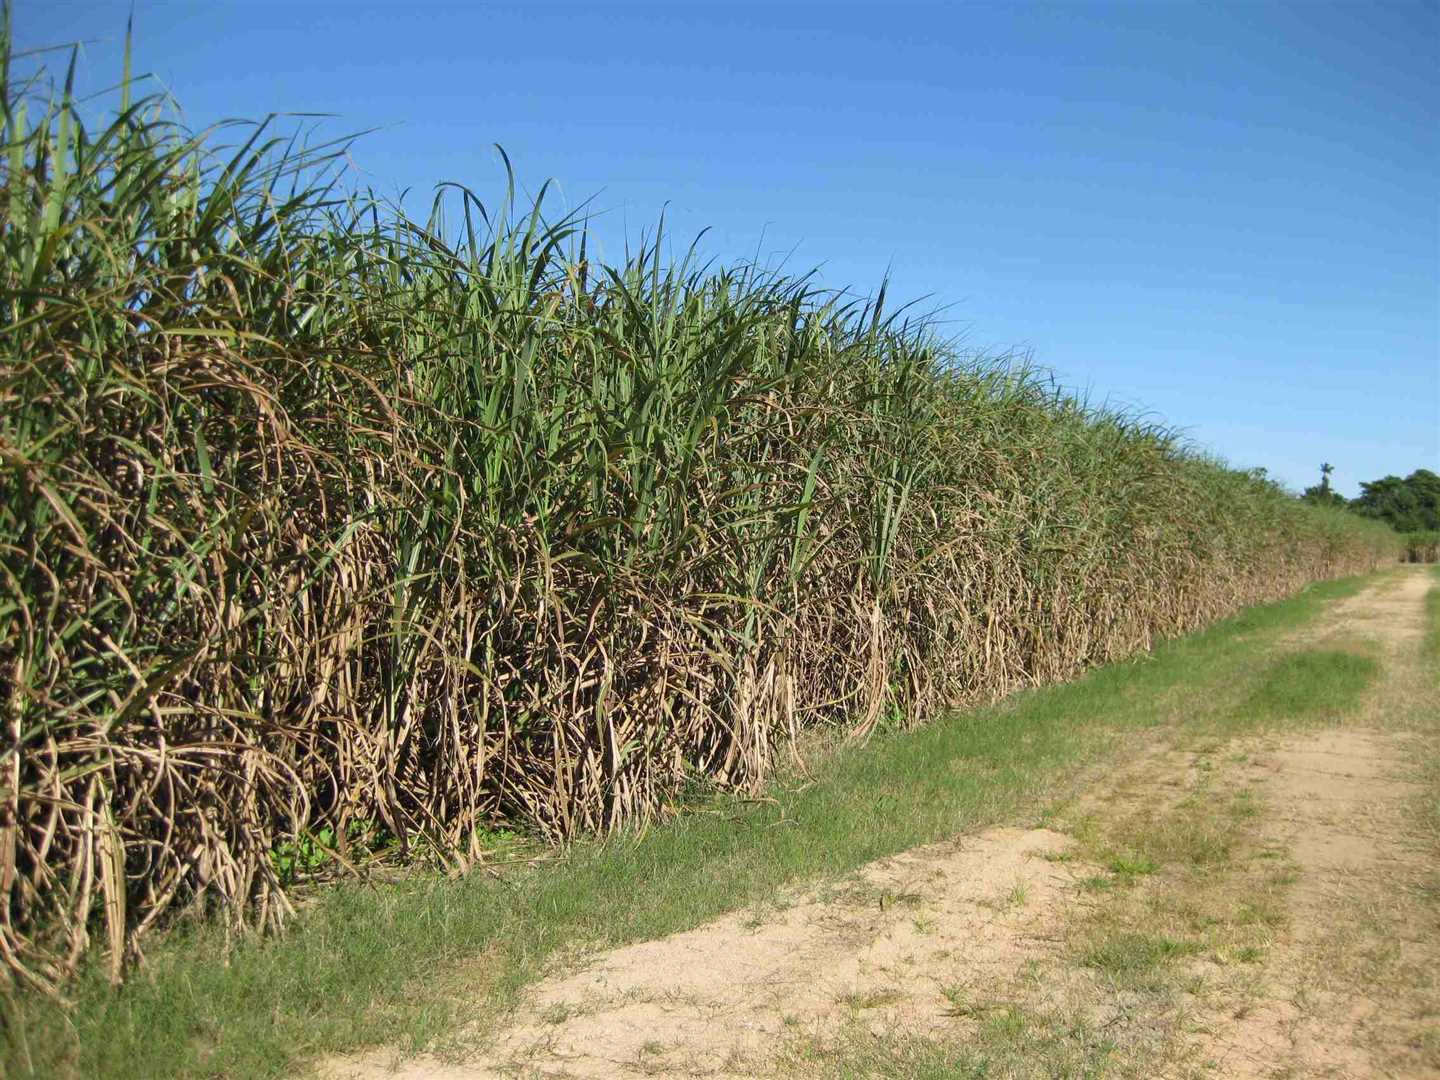 View of part of property showing part of cane crop, photo 2